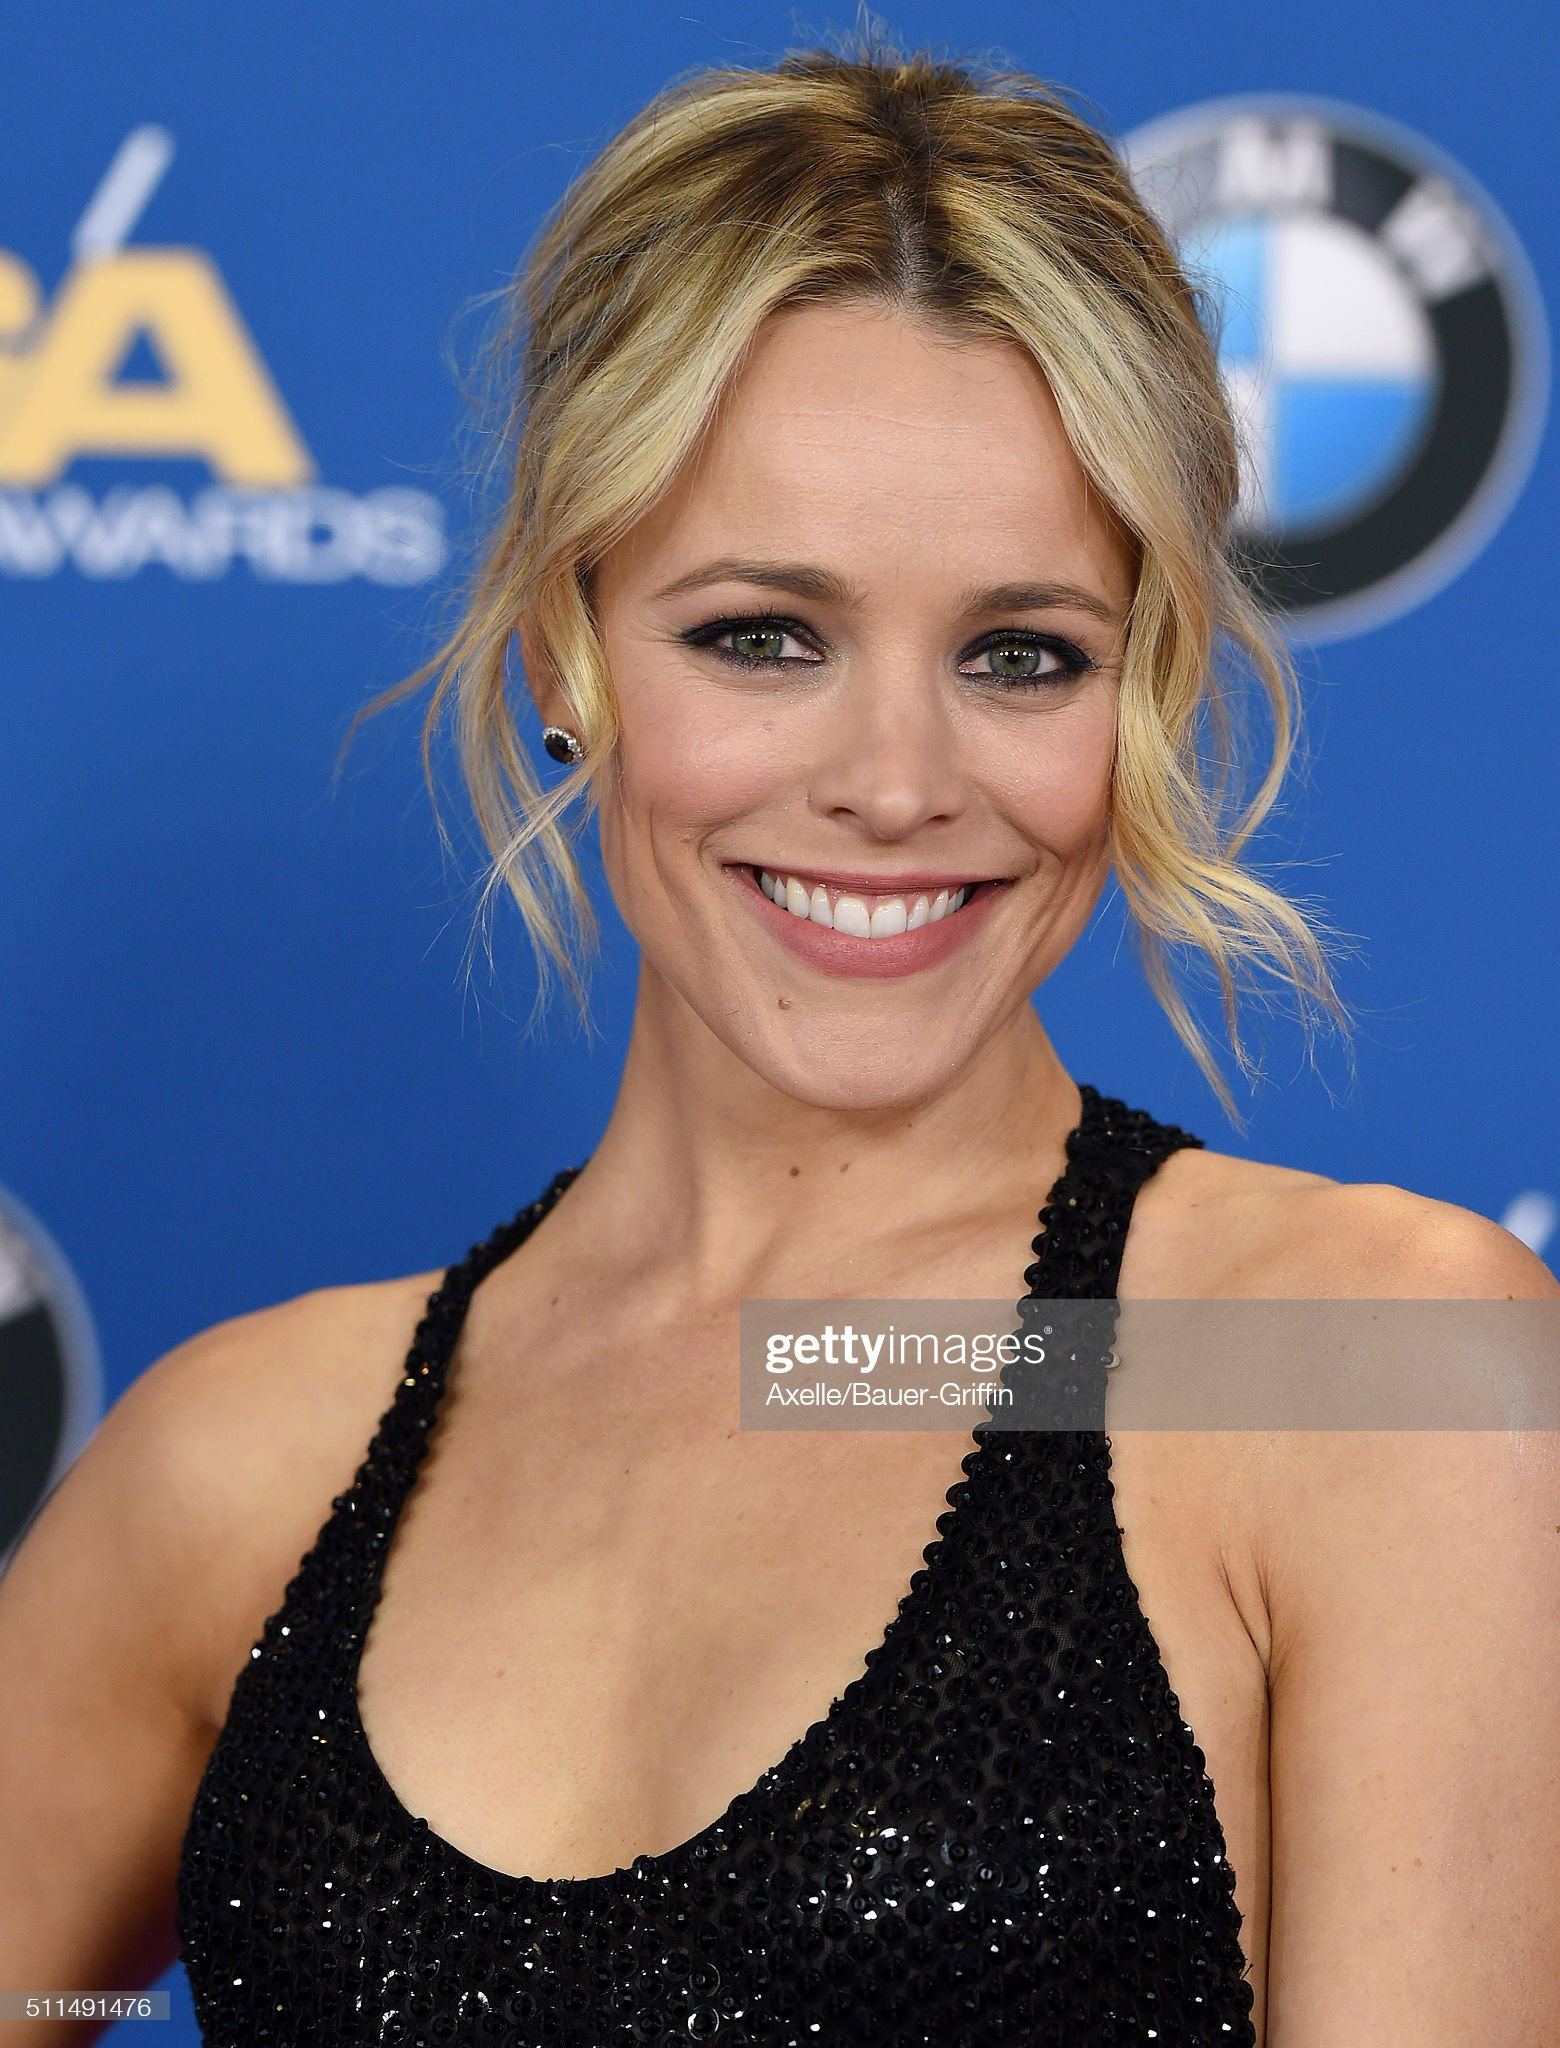 Top 80 Famosas Foroalturas - Página 2 Actress-rachel-mcadams-arrives-at-the-68th-annual-directors-guild-of-picture-id511491476?s=2048x2048